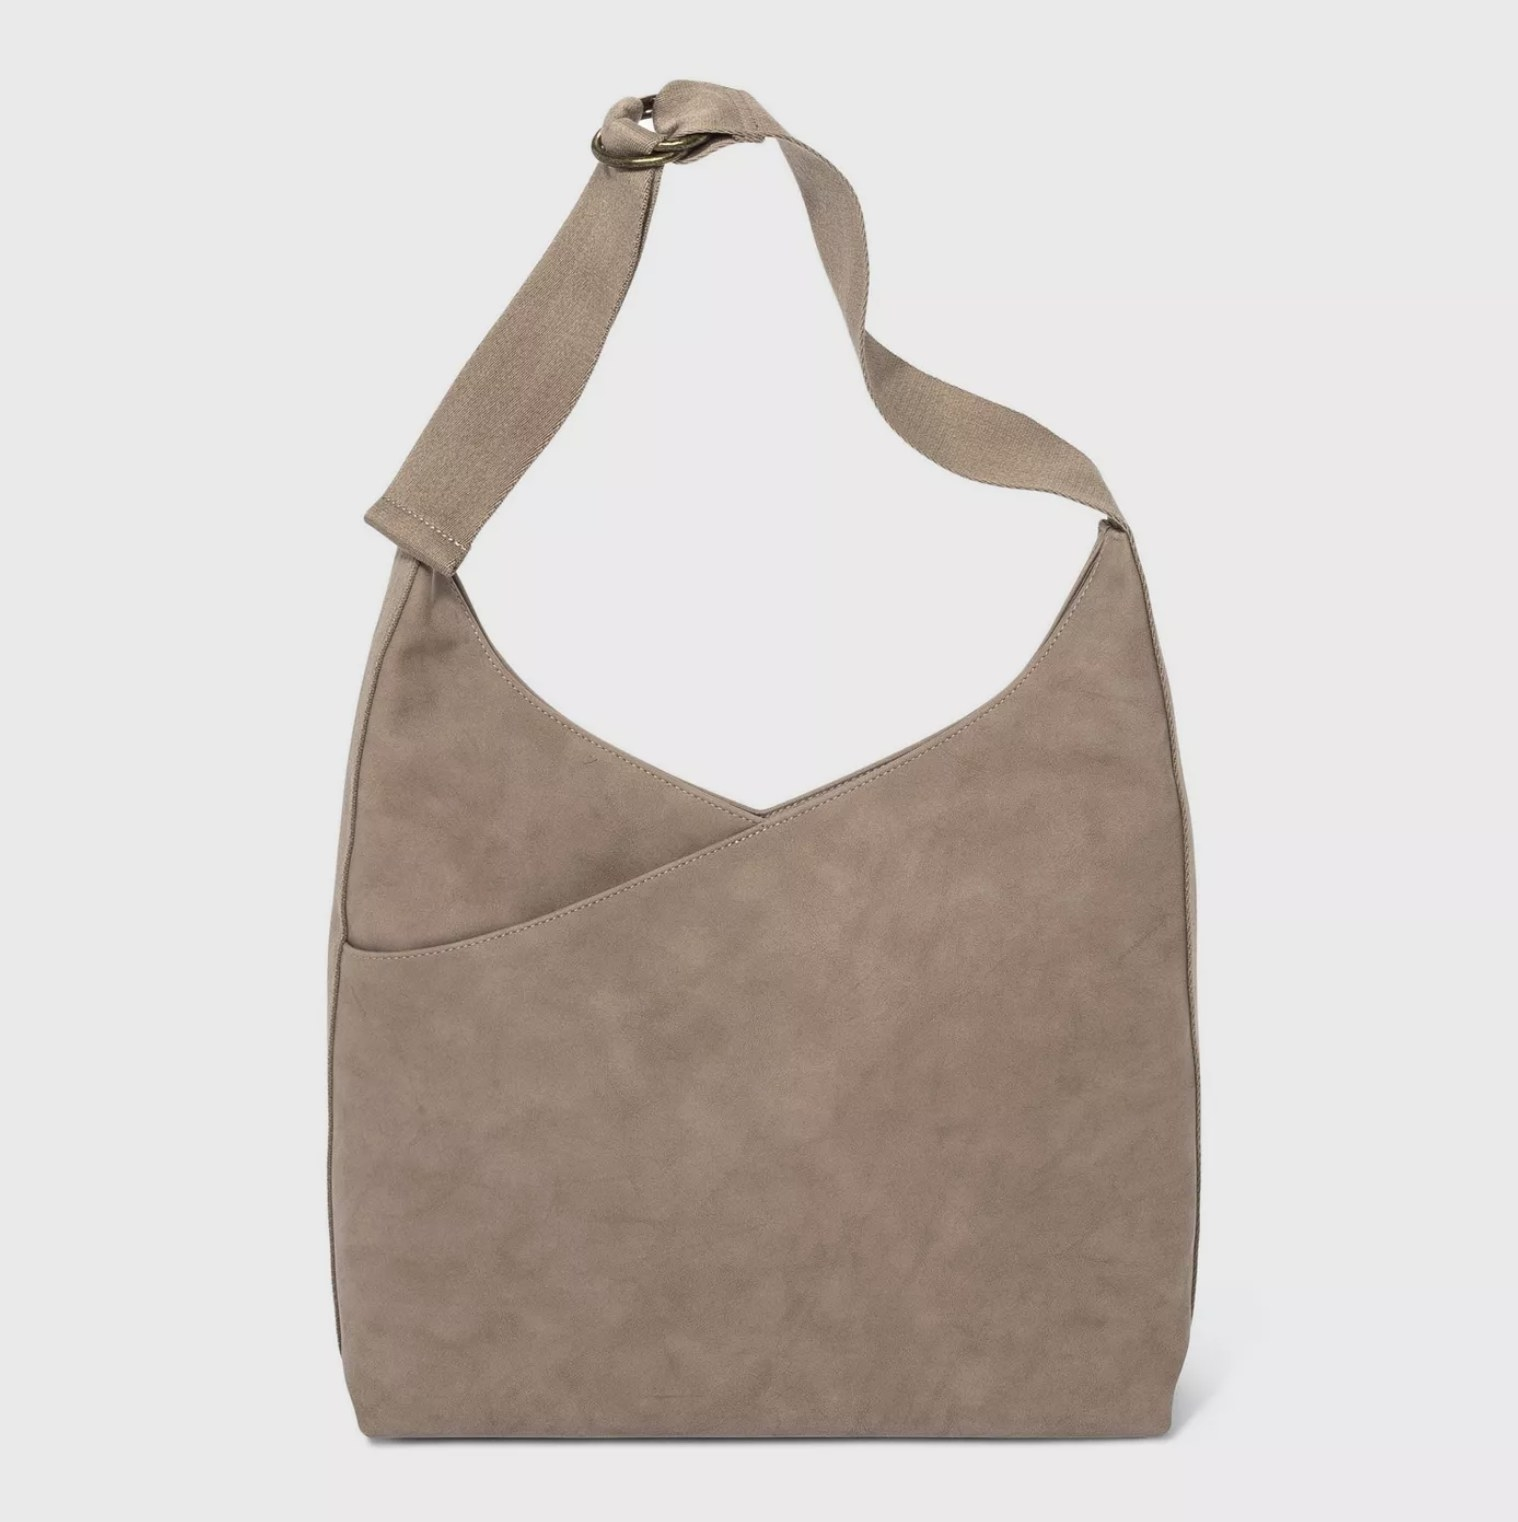 The bag in taupe